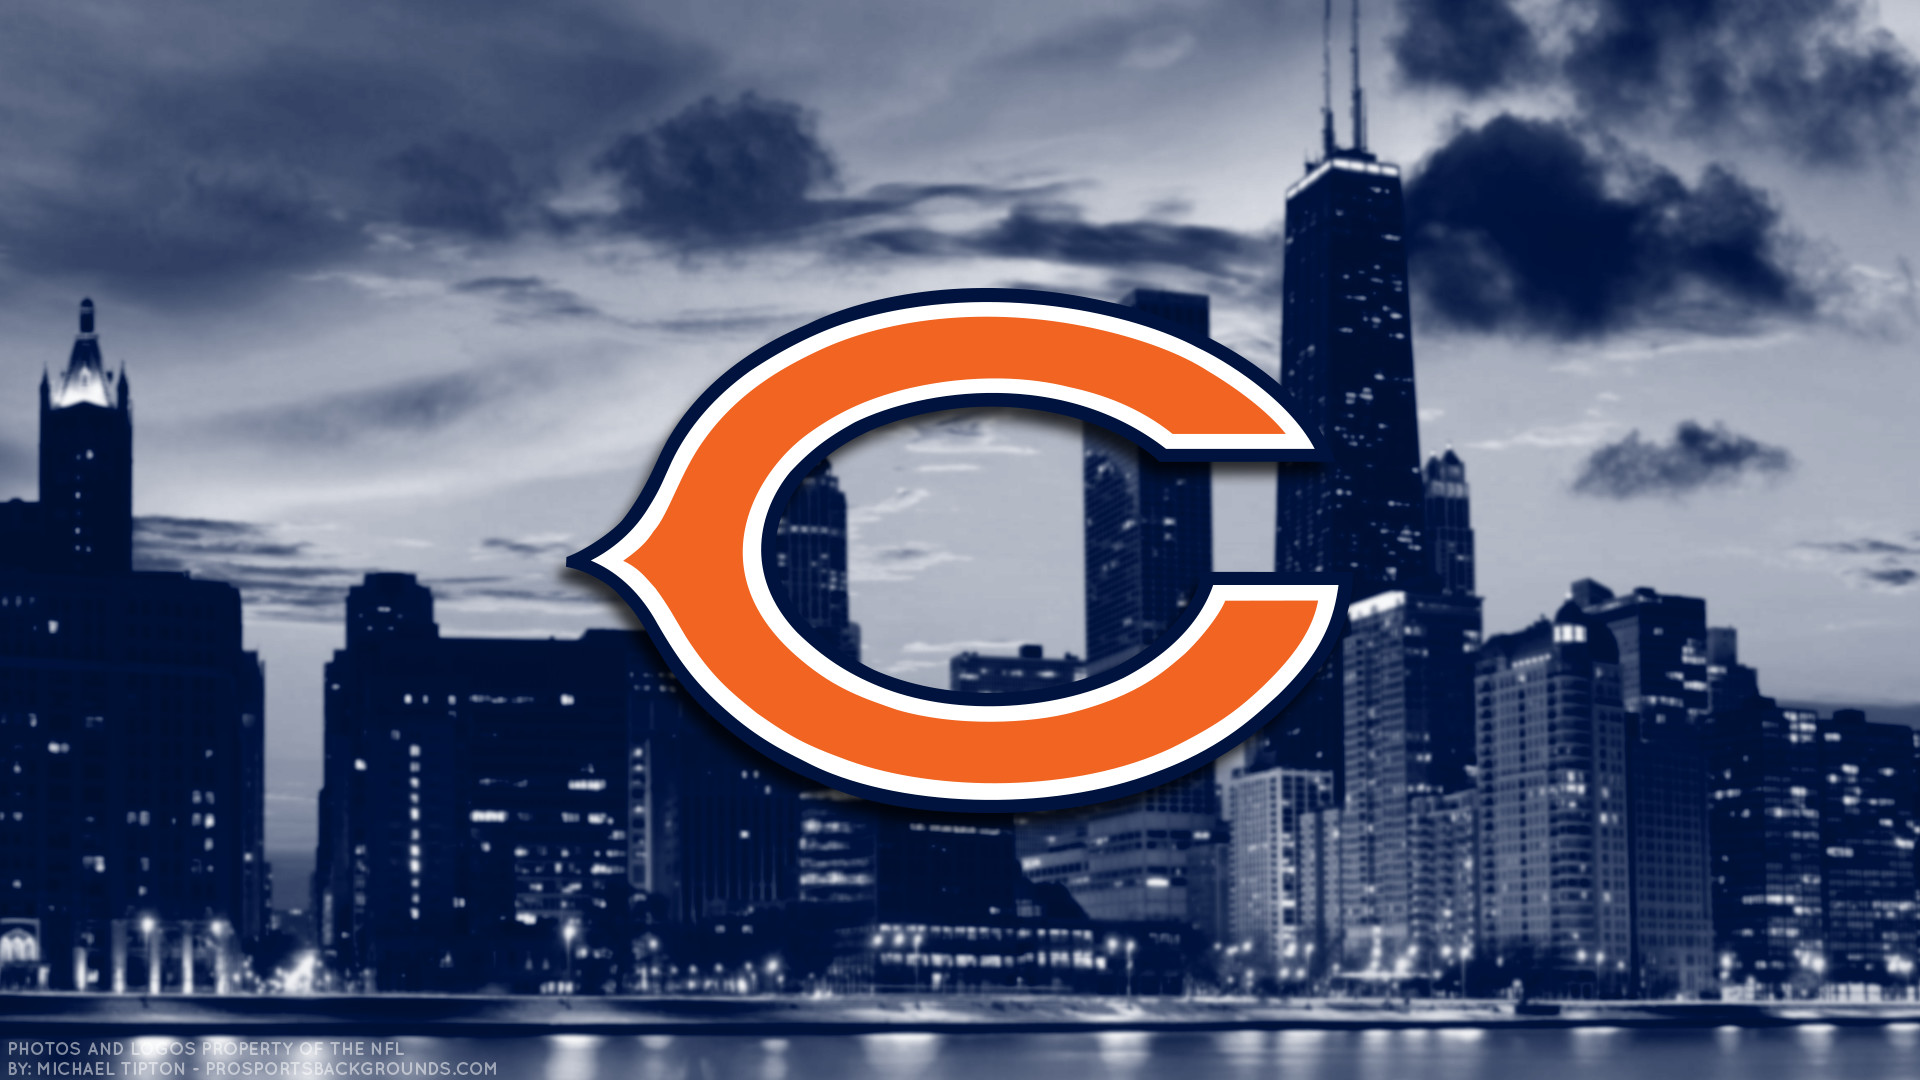 1920x1080 Chicago Bears wallpapers and Pictures download free | HD Wallpapers |  Pinterest | Hd wallpaper and Wallpaper